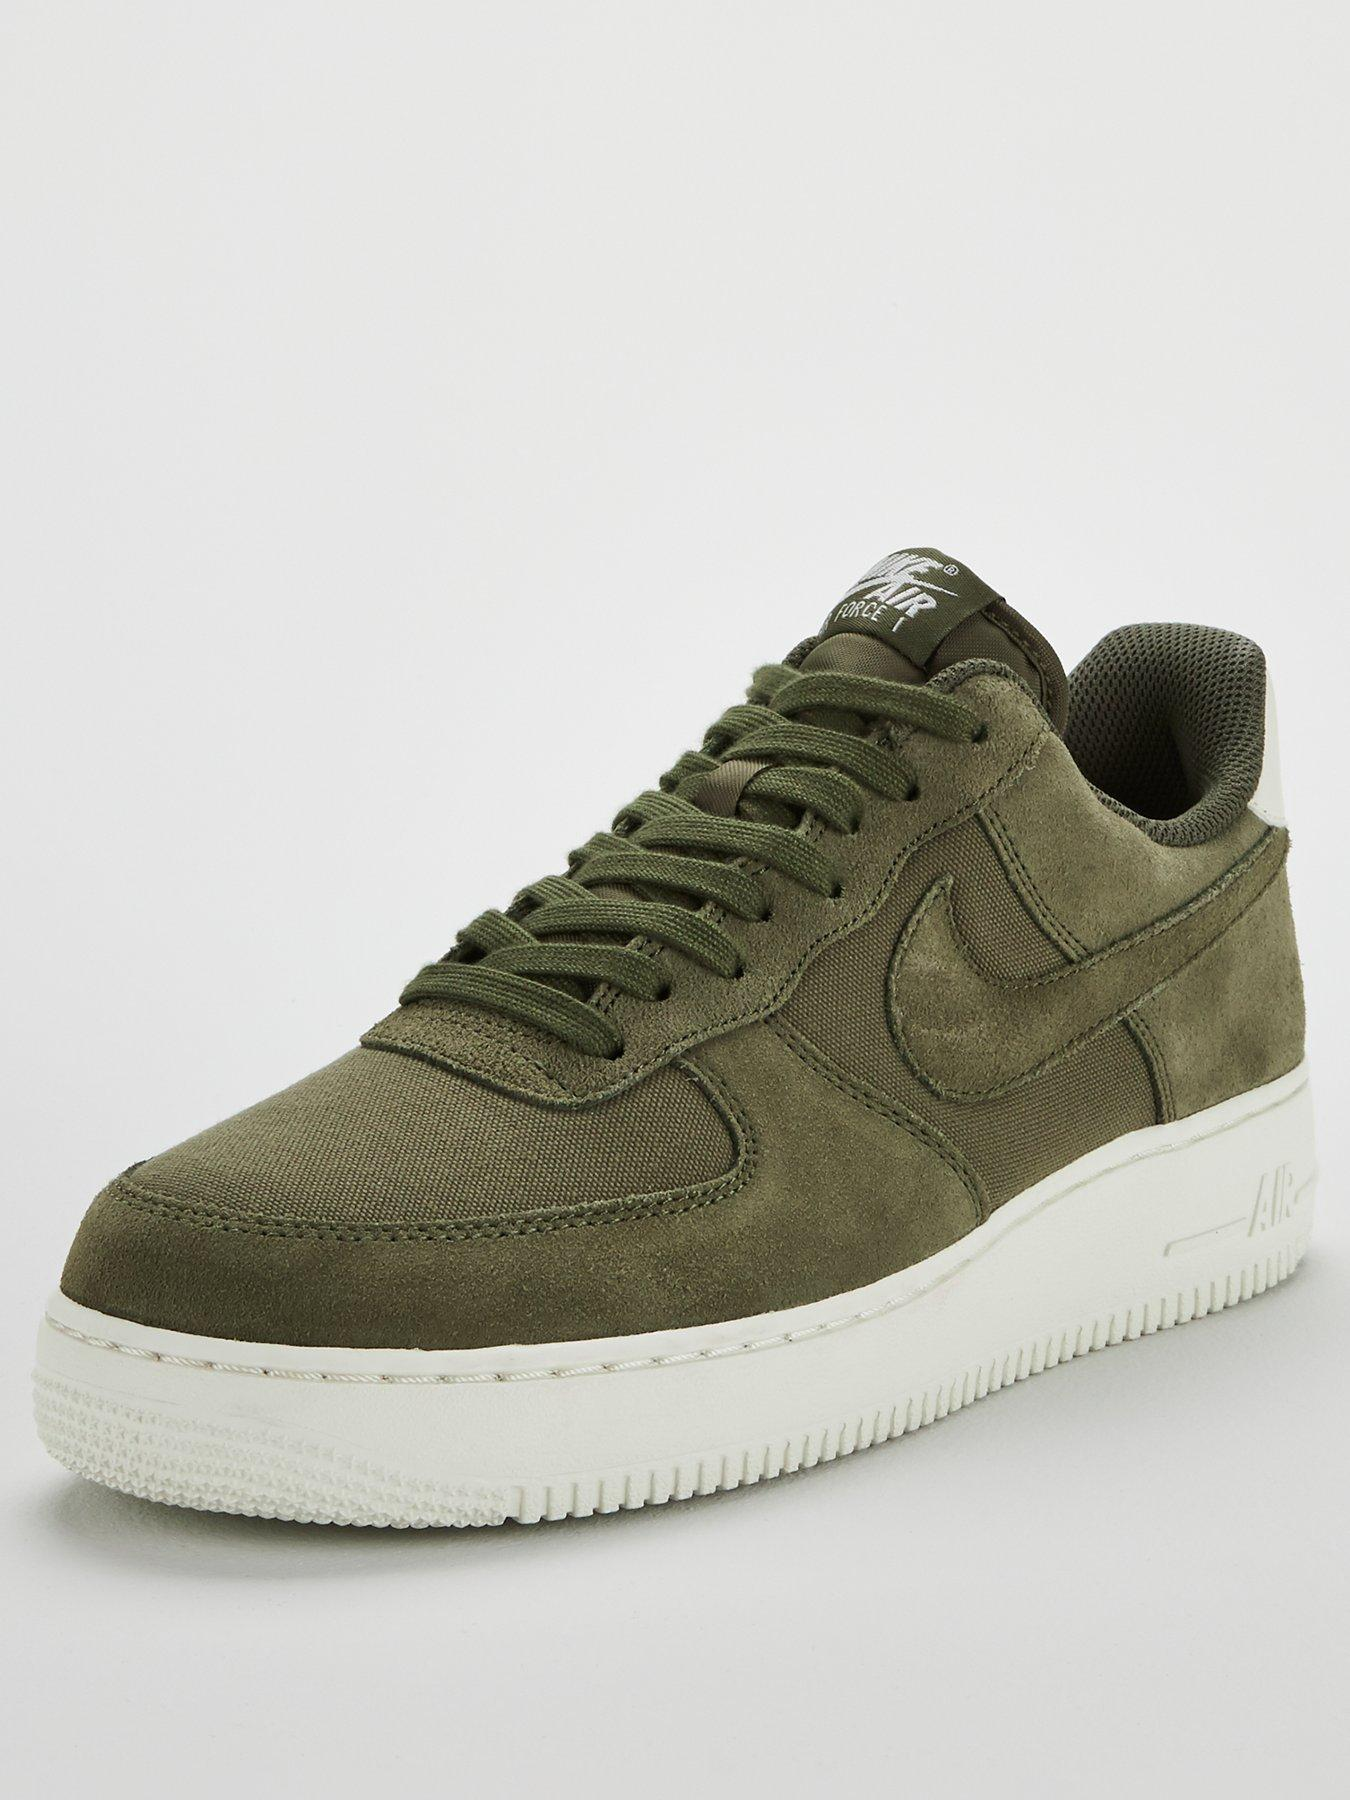 best service 3c507 14f8e ... italy nike air force 1 07 suede 0a058 289d0